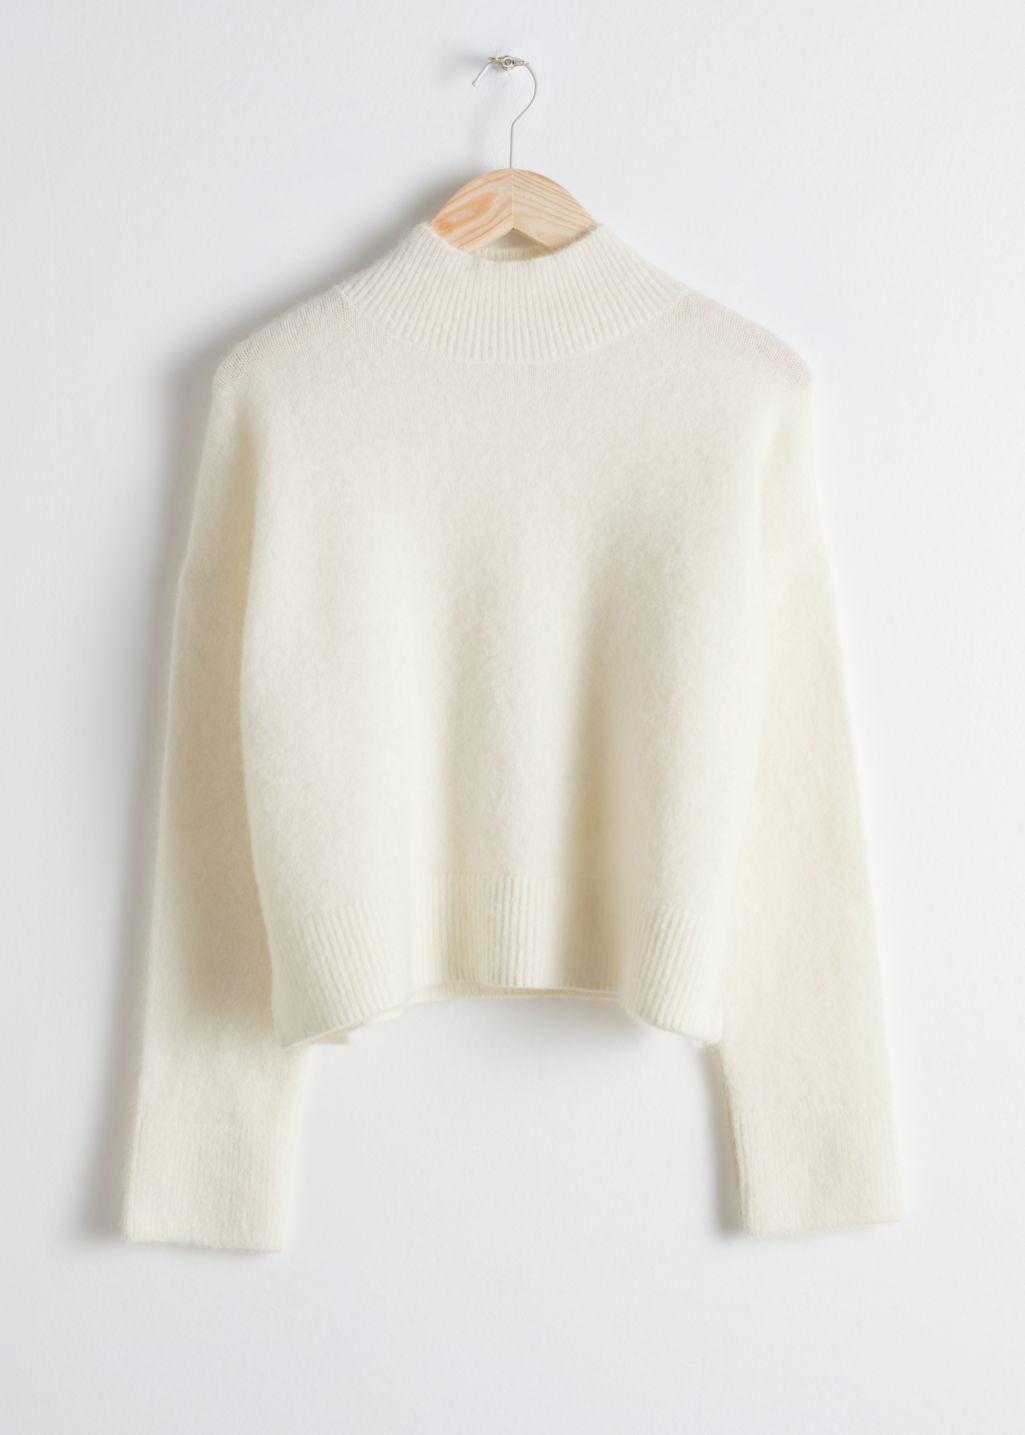 5f3113ccb7c Wool Blend Cropped Turtleneck - White - Sweaters - & Other Stories